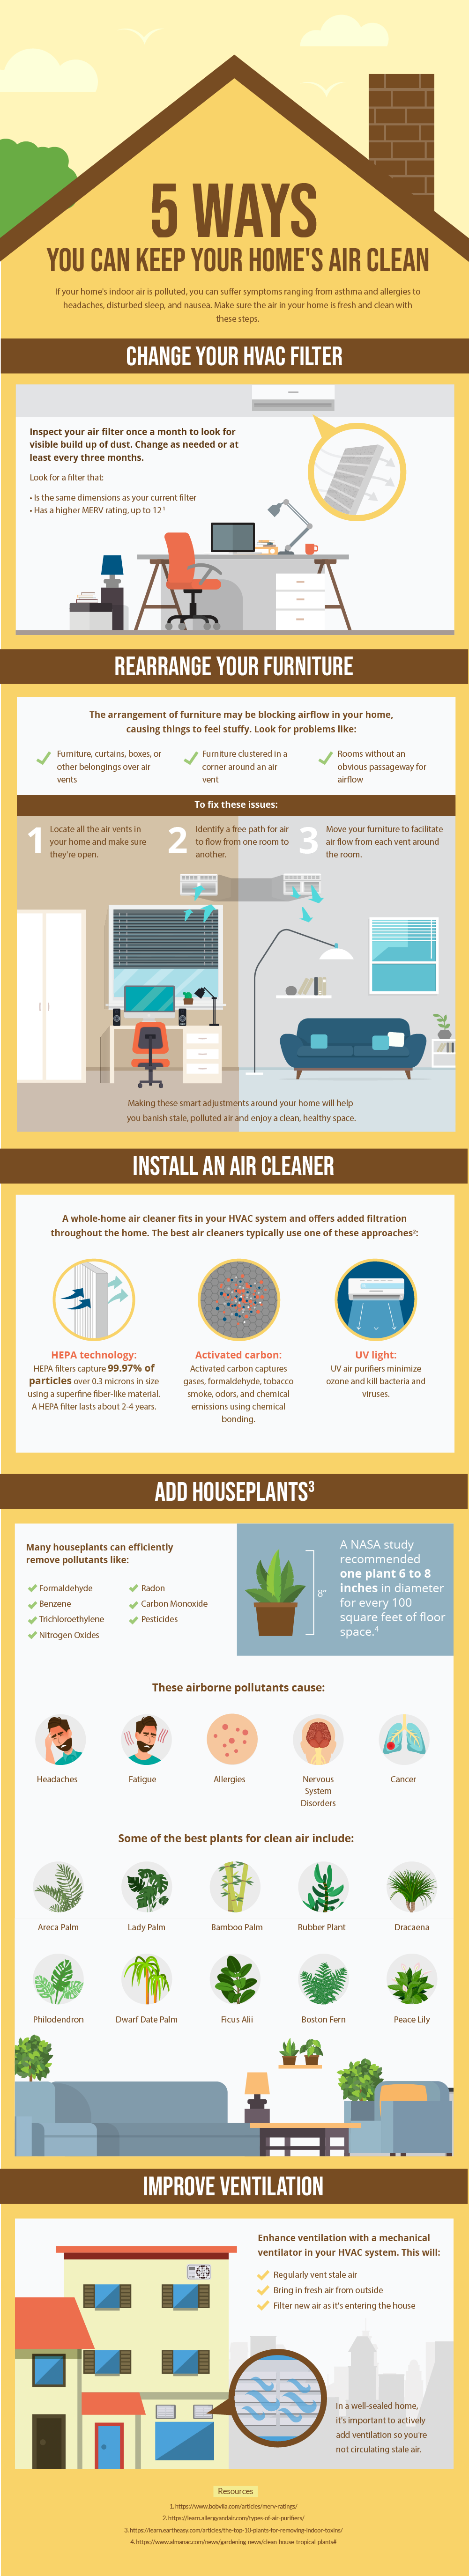 5 Ways You Can Keep The Air in Your Home Clean